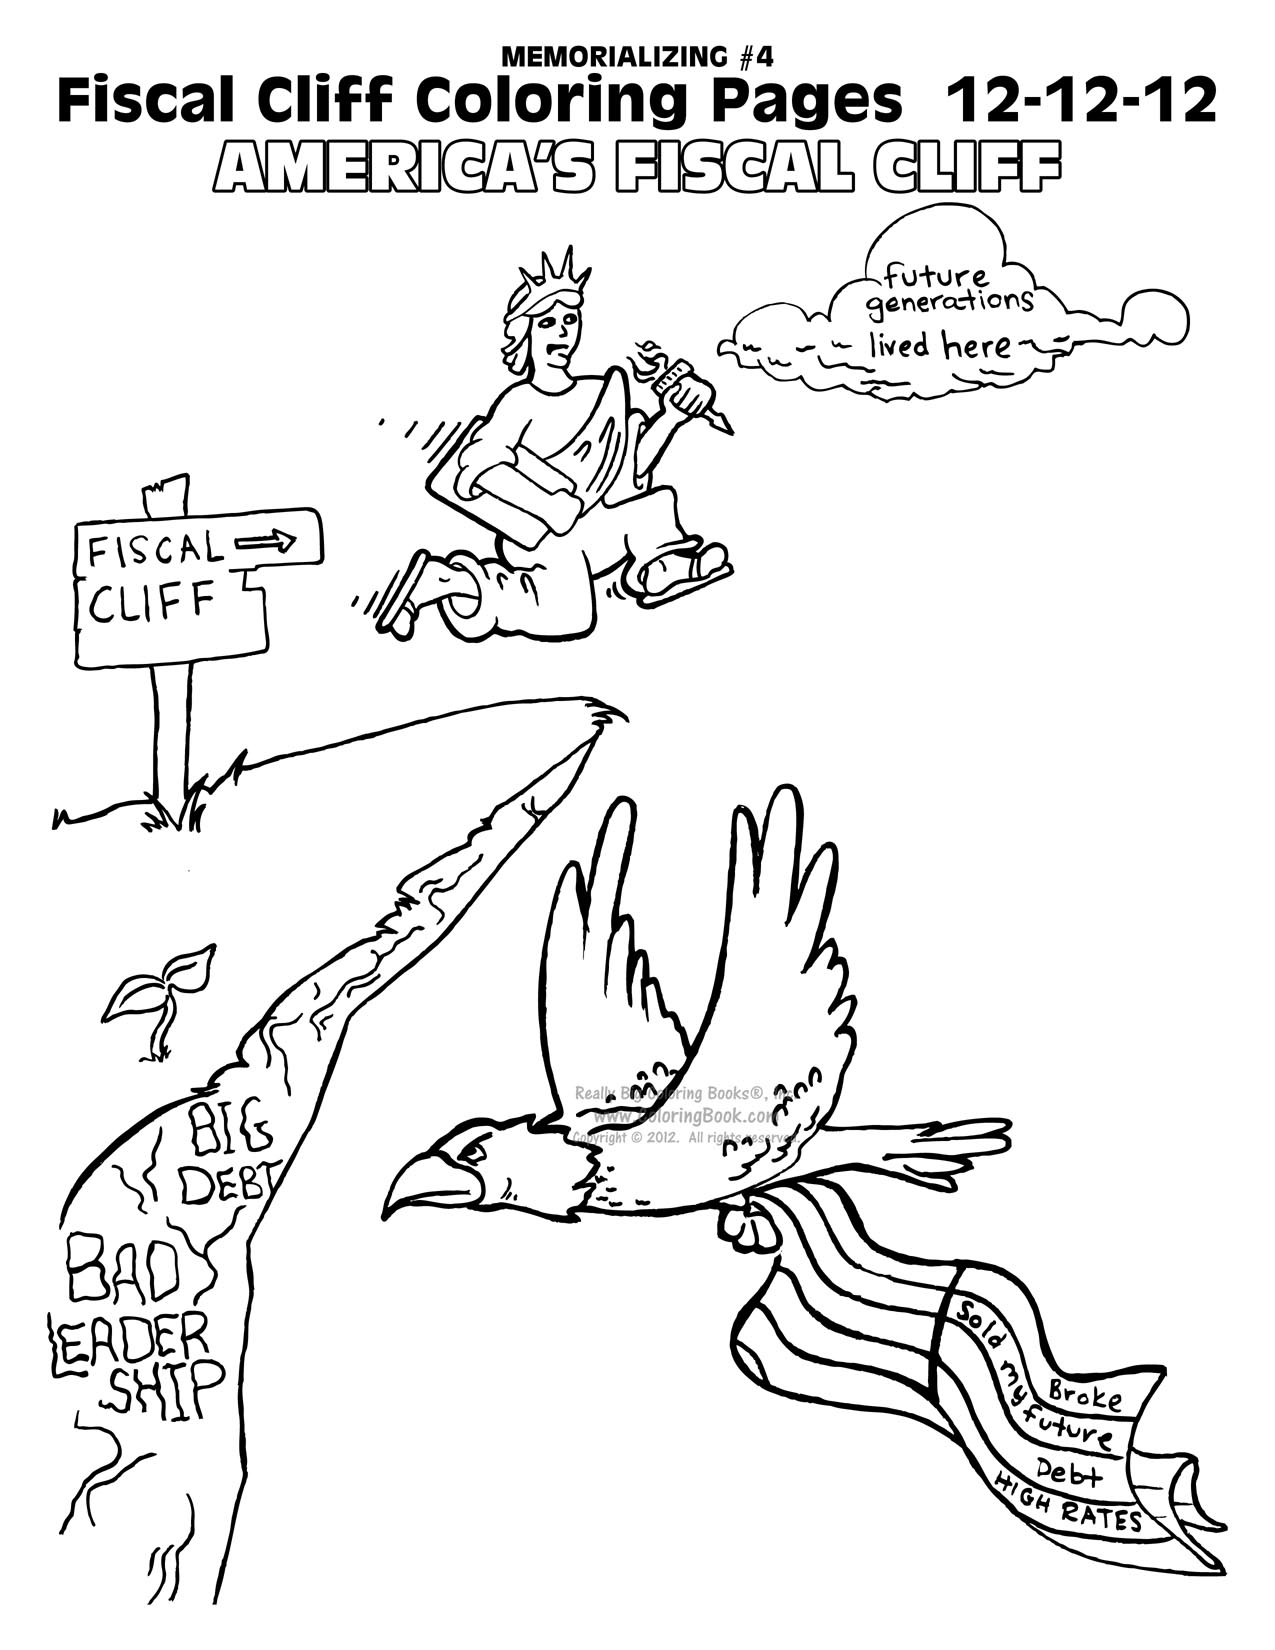 Fiscal Cliff Coloring Book and the American Leadership